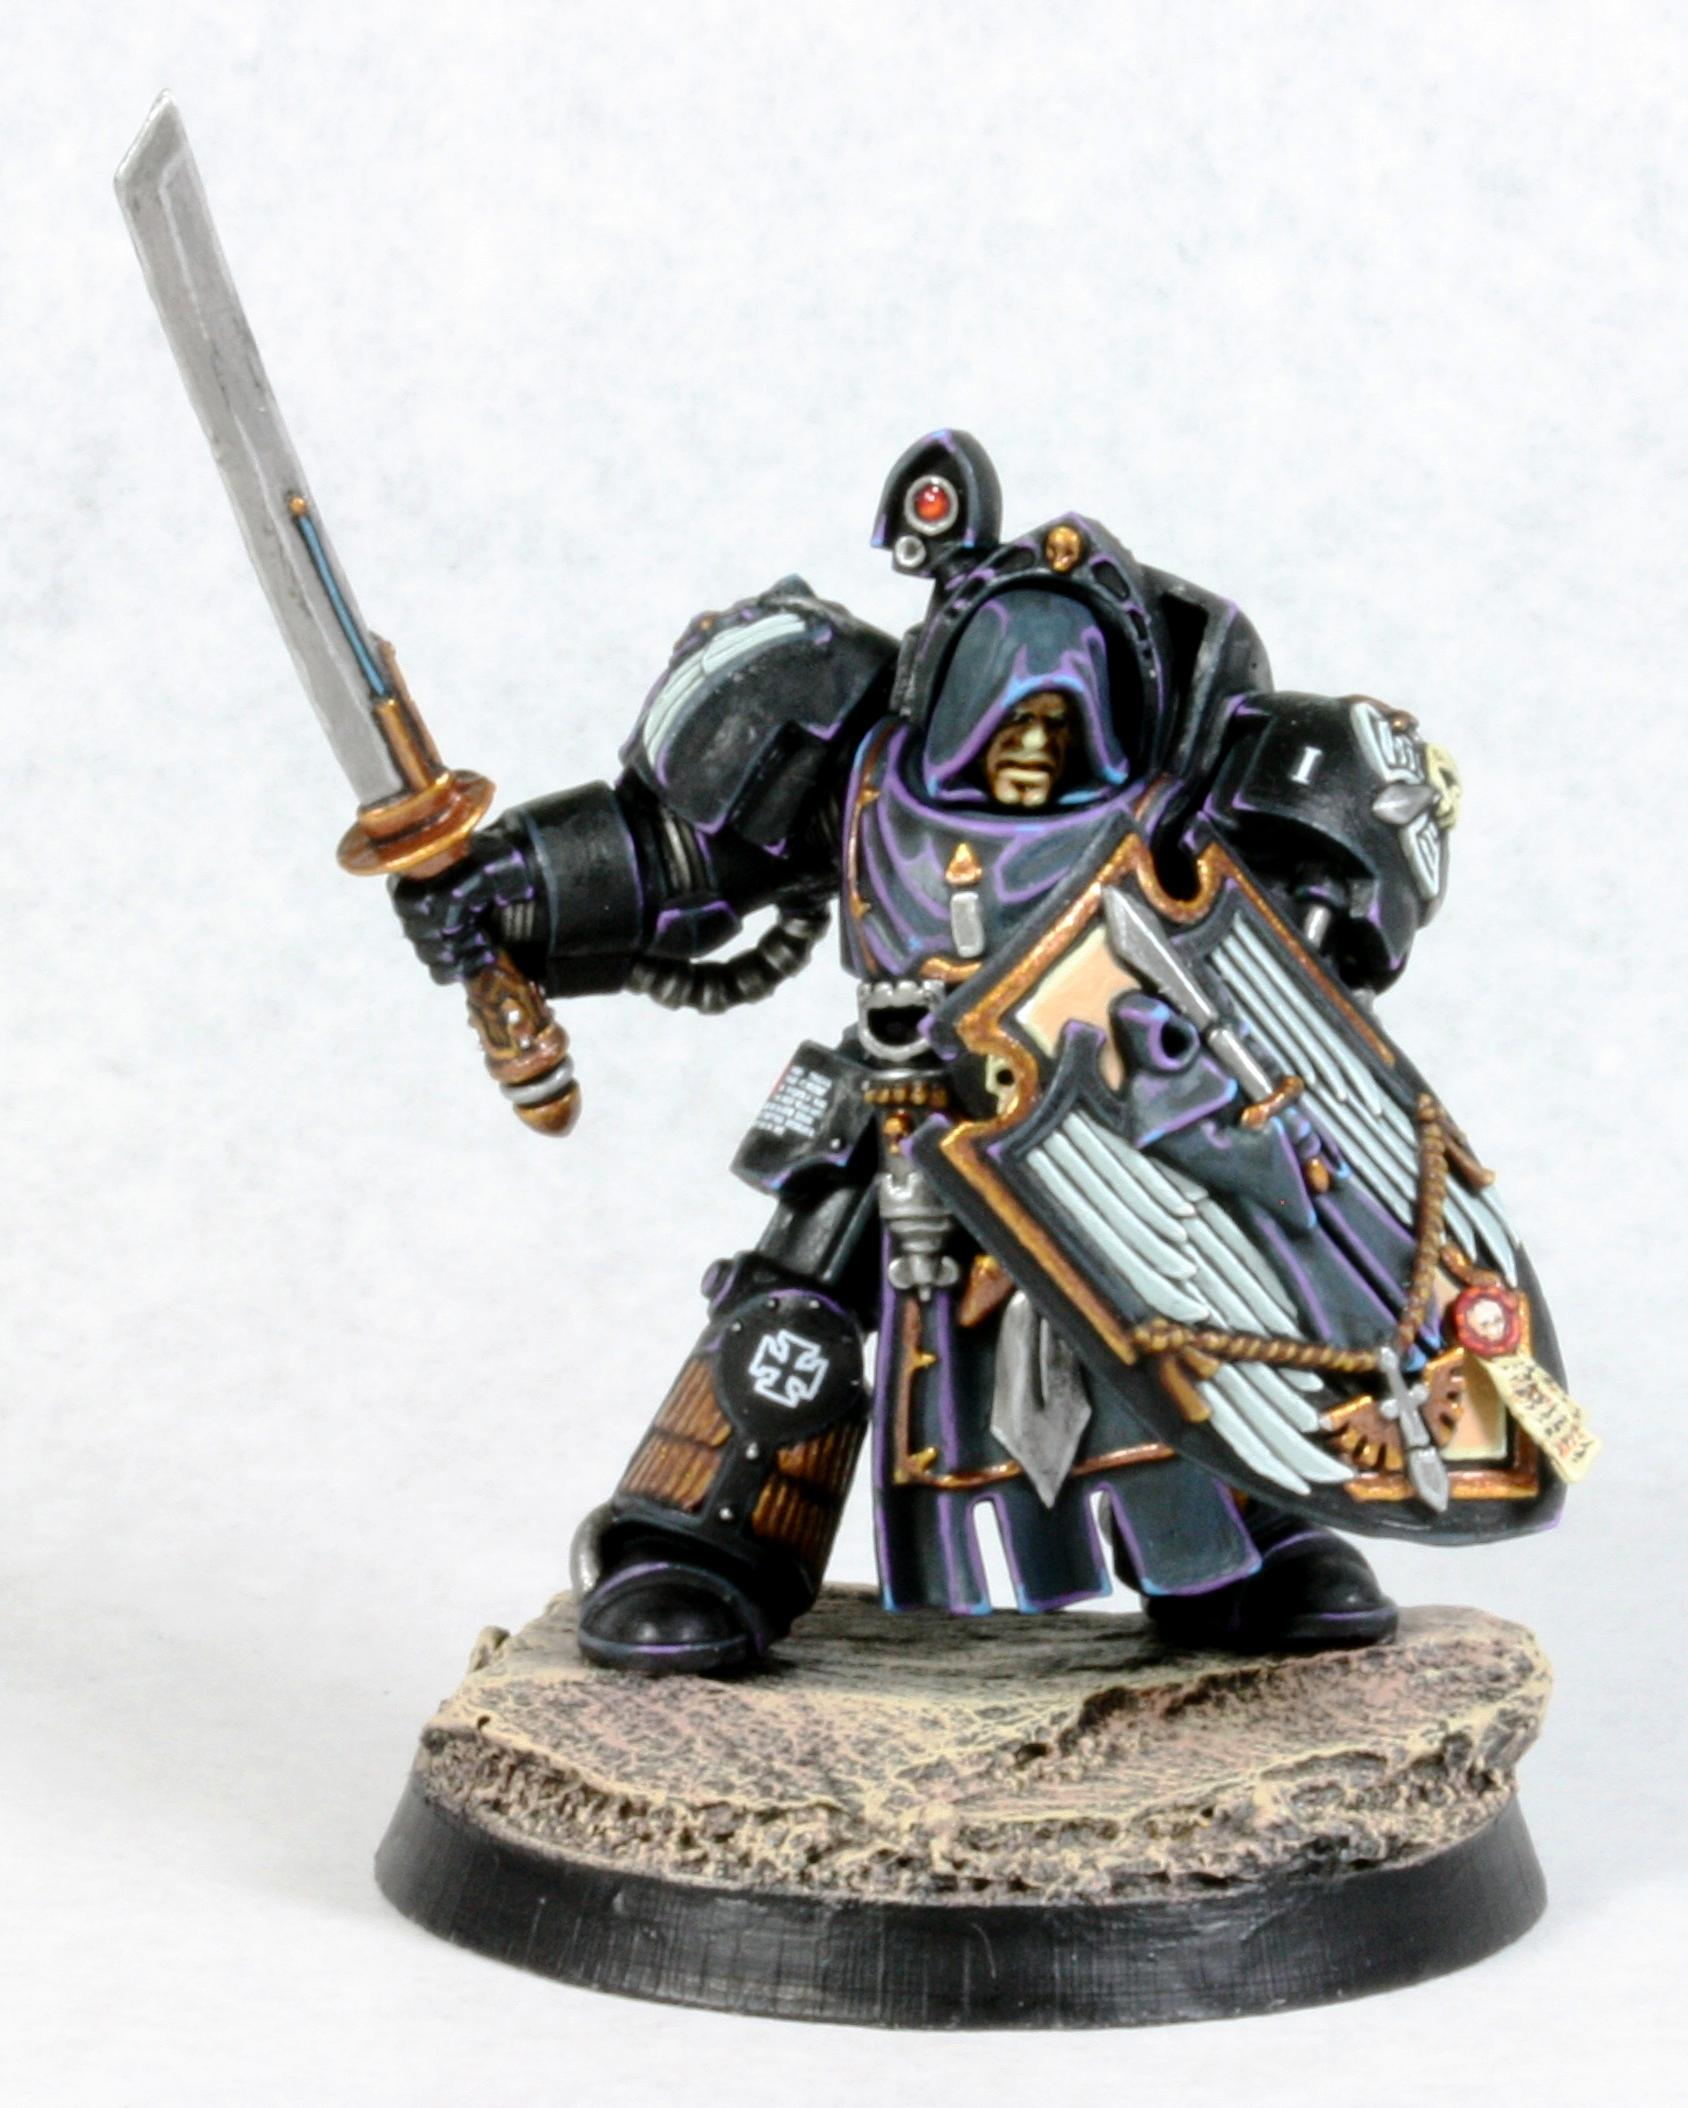 Dark Angels, Katana, Samurai, Space Marines, Terminator Armor